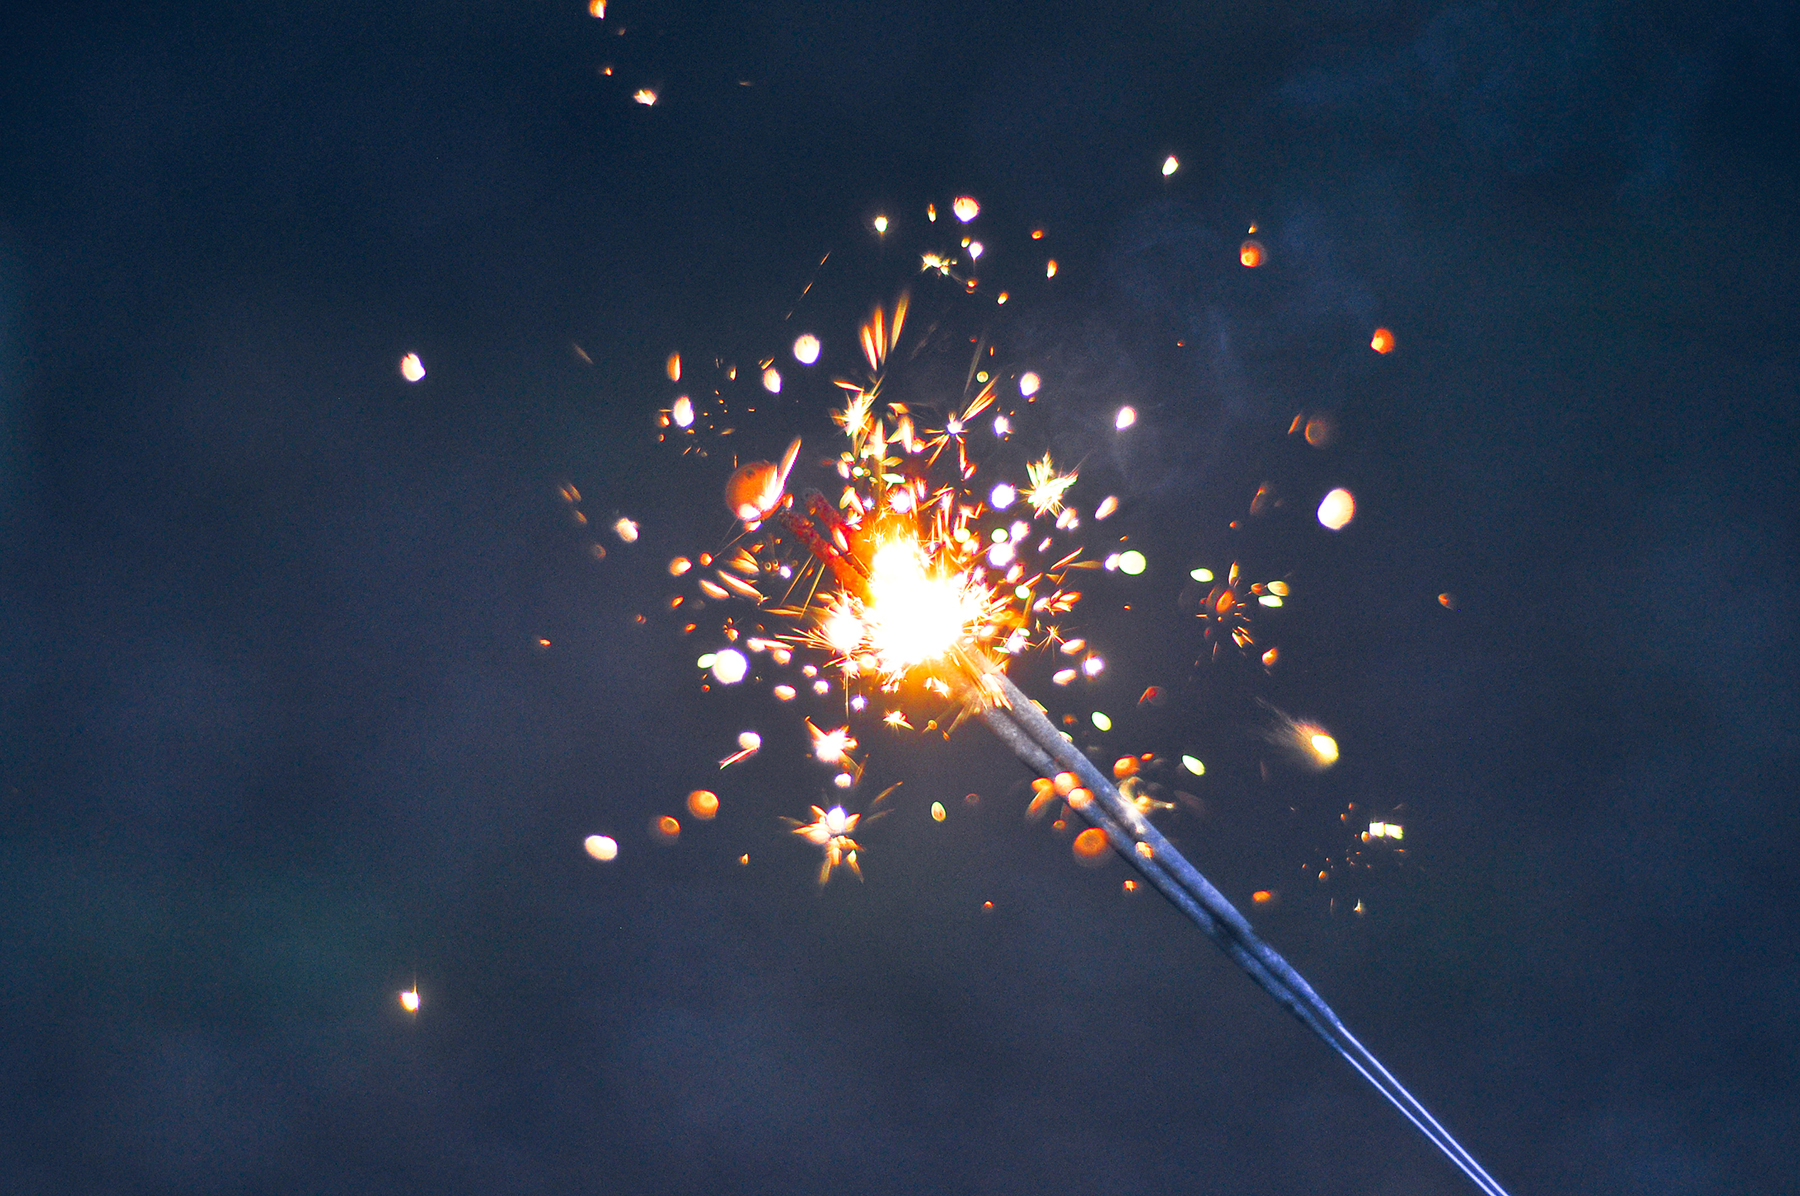 New Years Eve Wallpaper Iphone 6 The Awesome Physics In A Simple Sparkler Wired